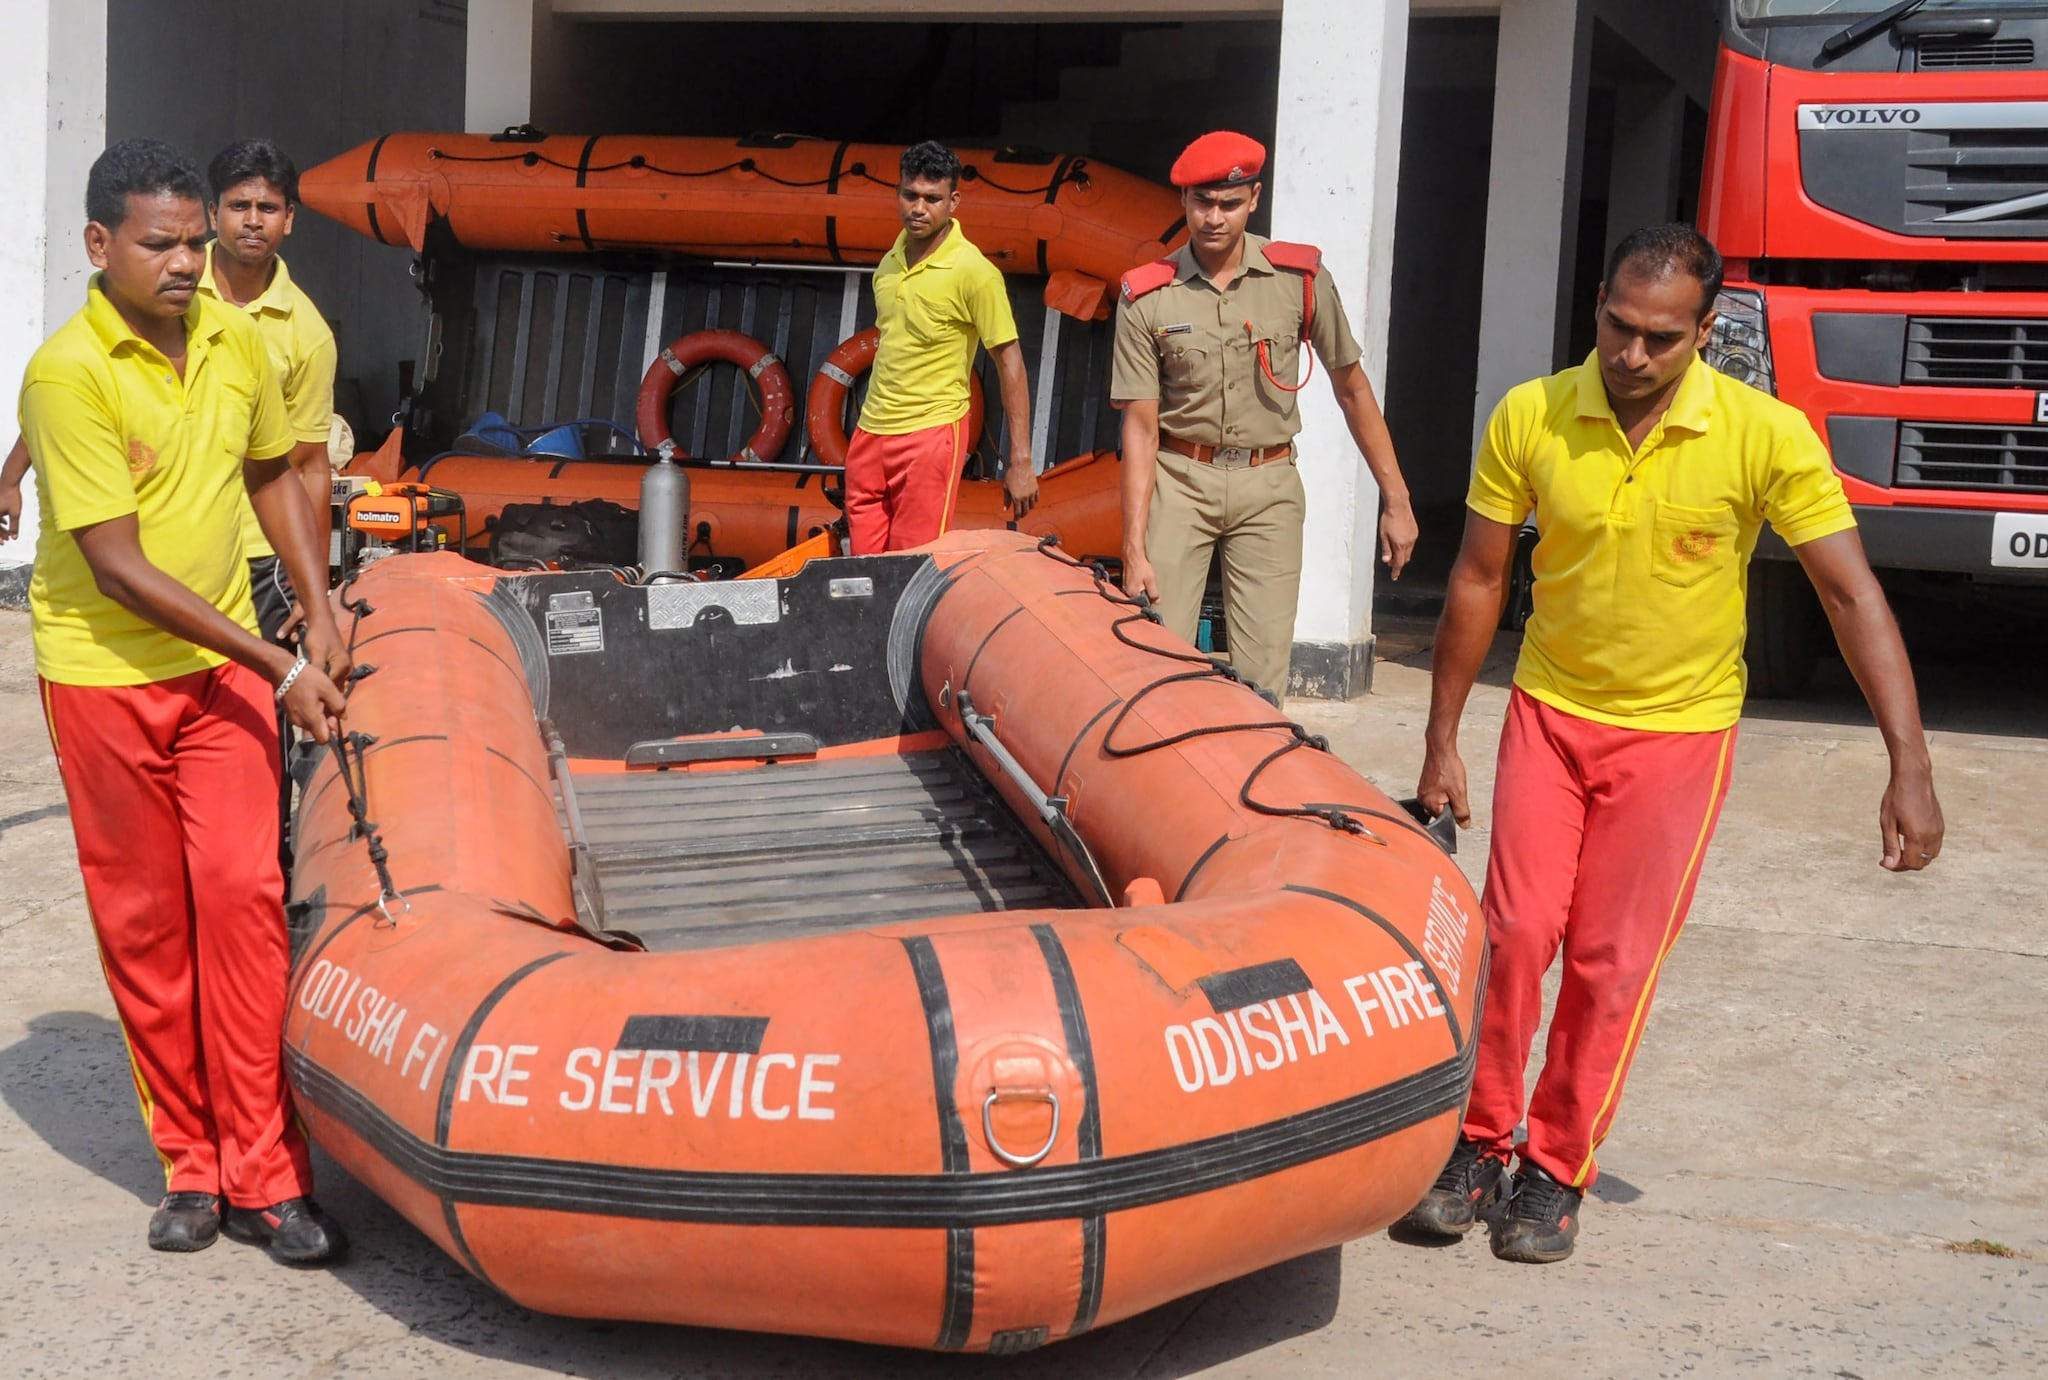 Odisha Fire Service and Disaster Response personnel prepare for emergencies in view of Cyclone Fani, which may hit the Odisha coast by Friday, in Bhubaneswar, Tuesday, April 30, 2019. (PTI Photo)